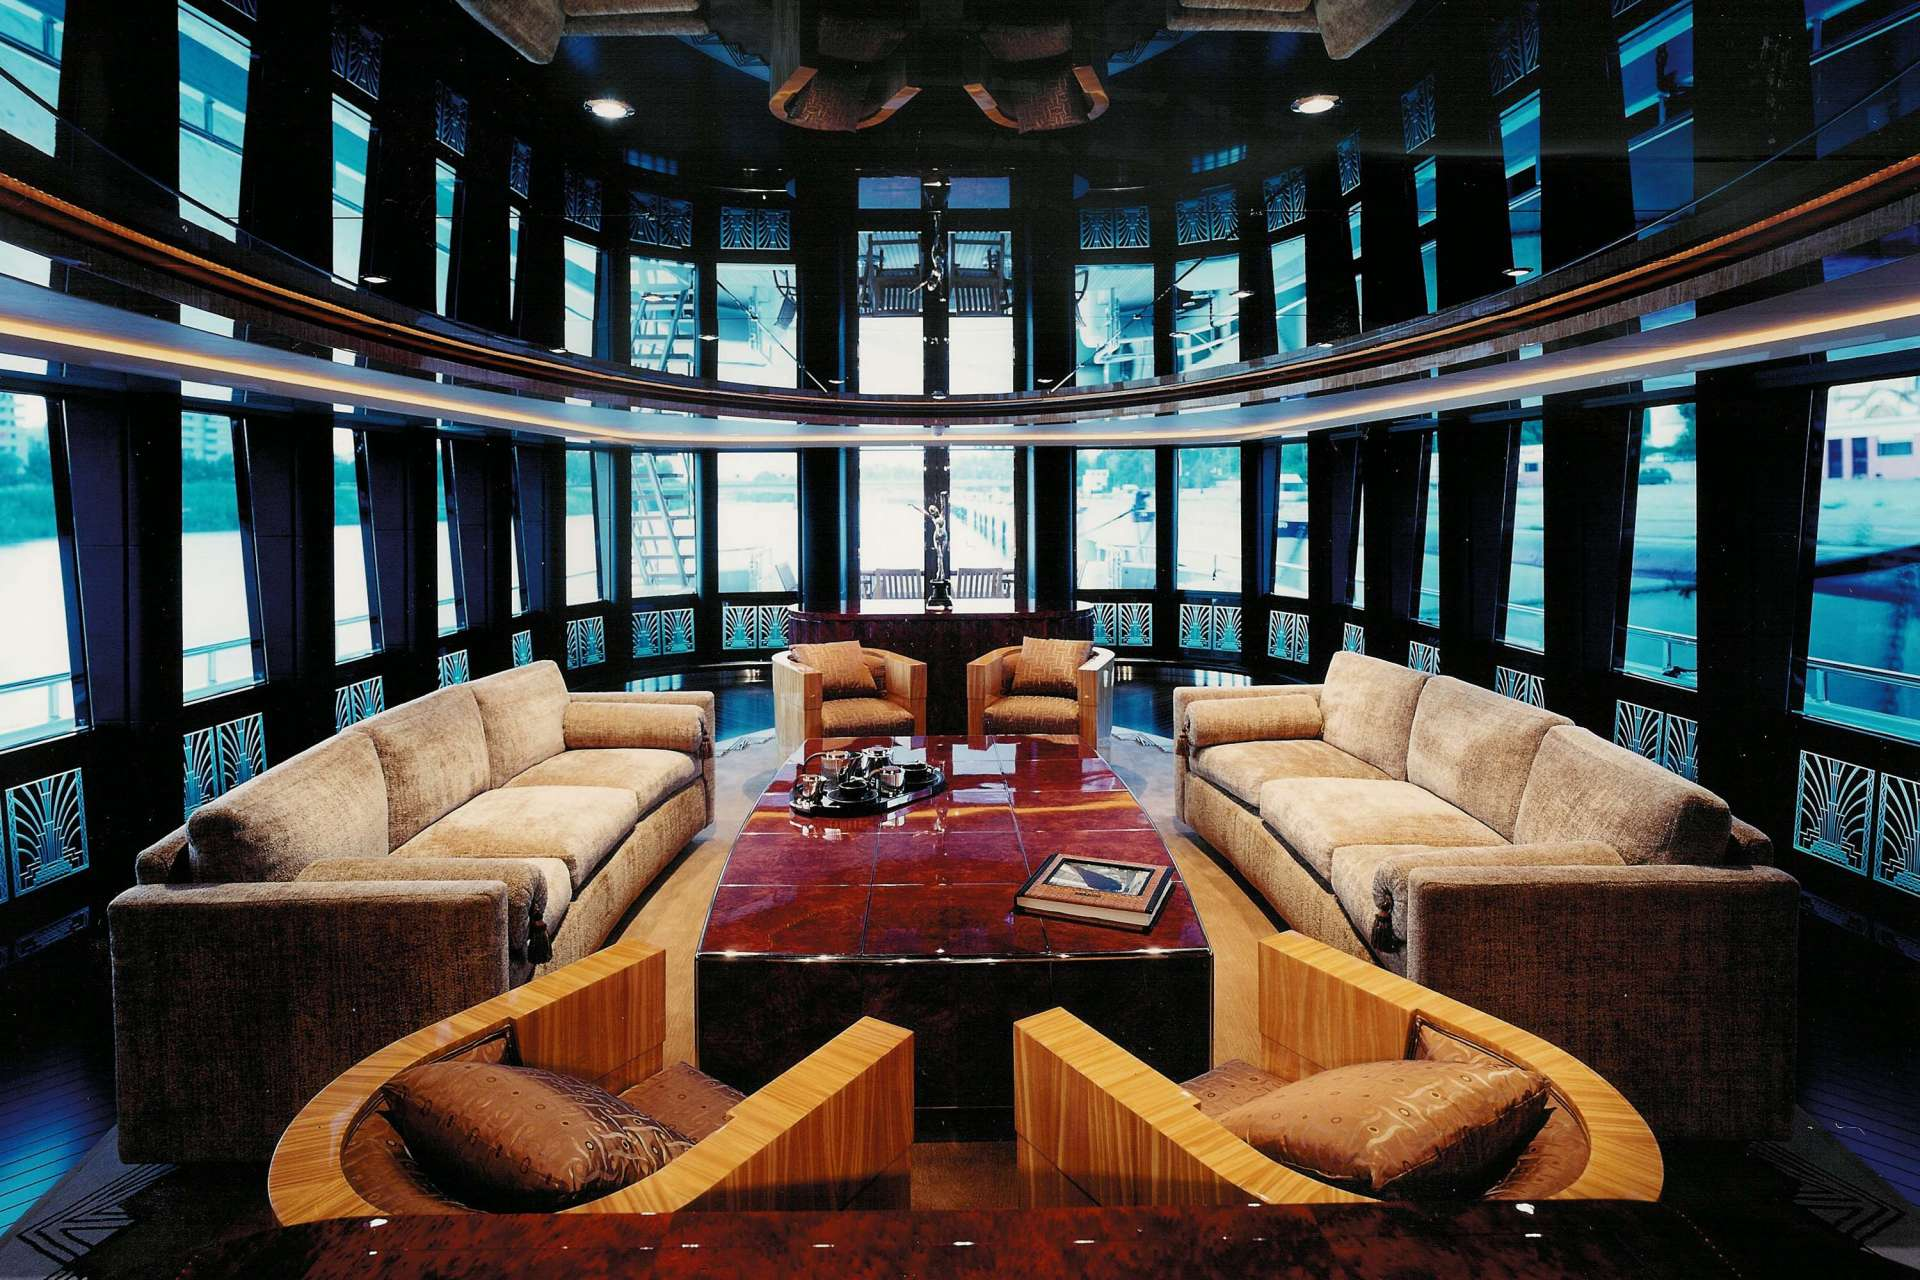 yacht Kisses interior